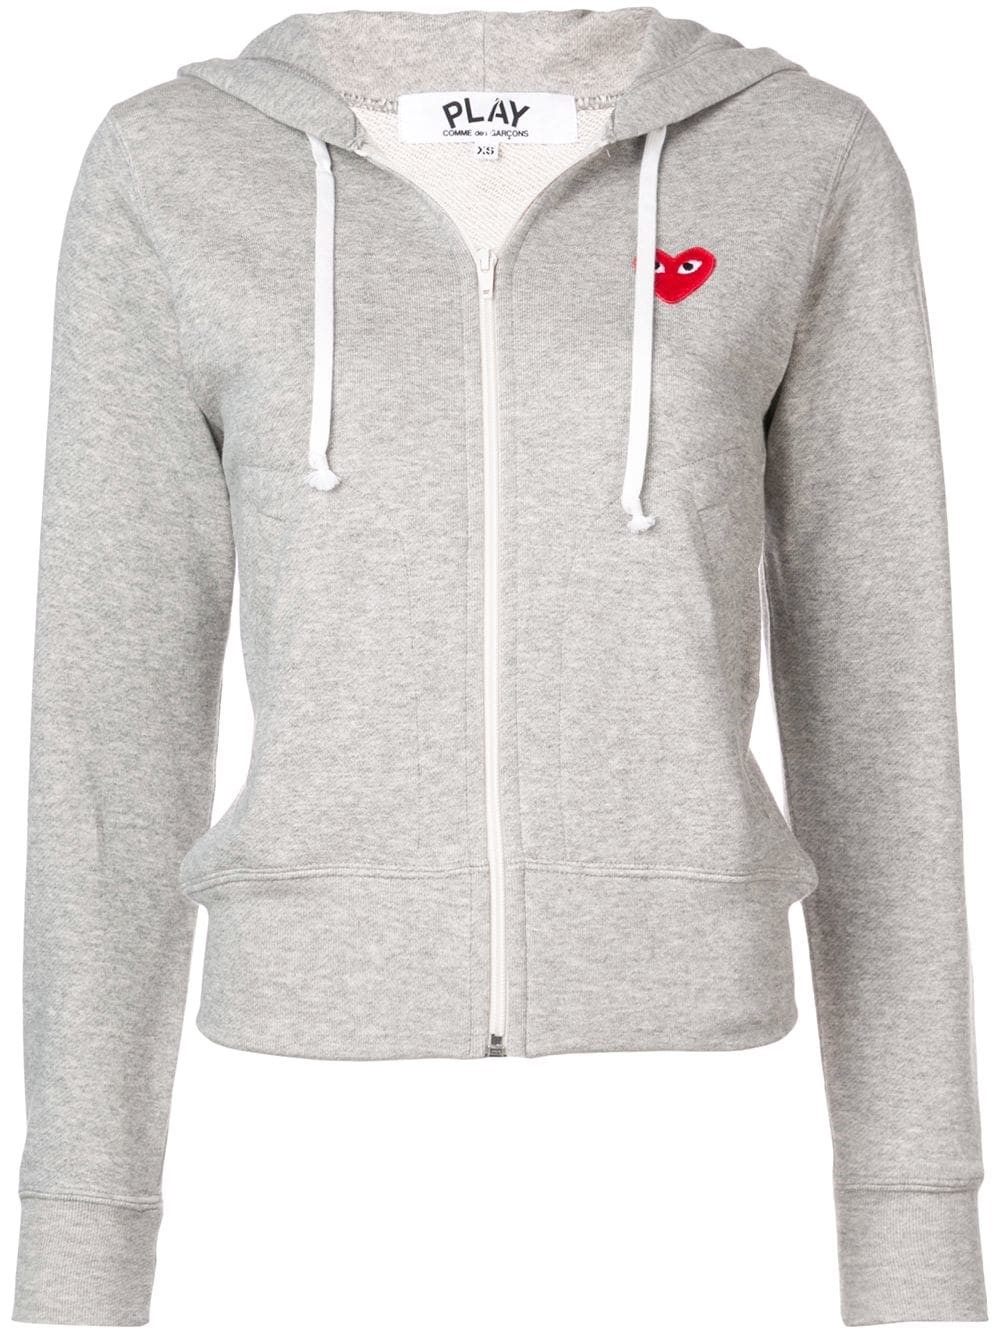 Comme Des Garçons Heart Logo Hoodie Sweater Available On